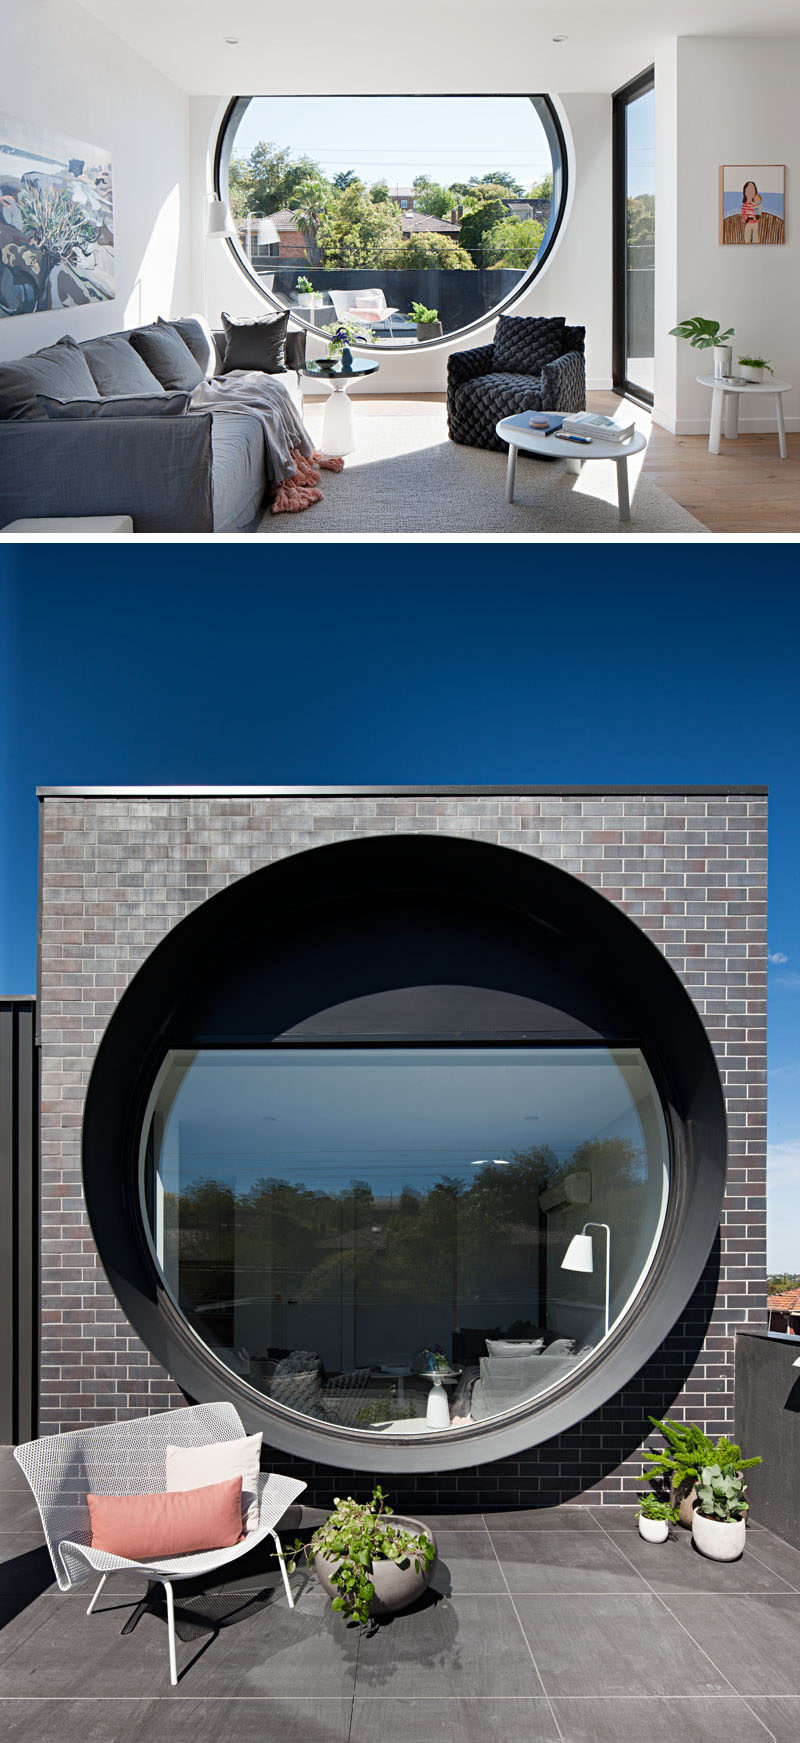 This New Apartment Building In Australia Features An